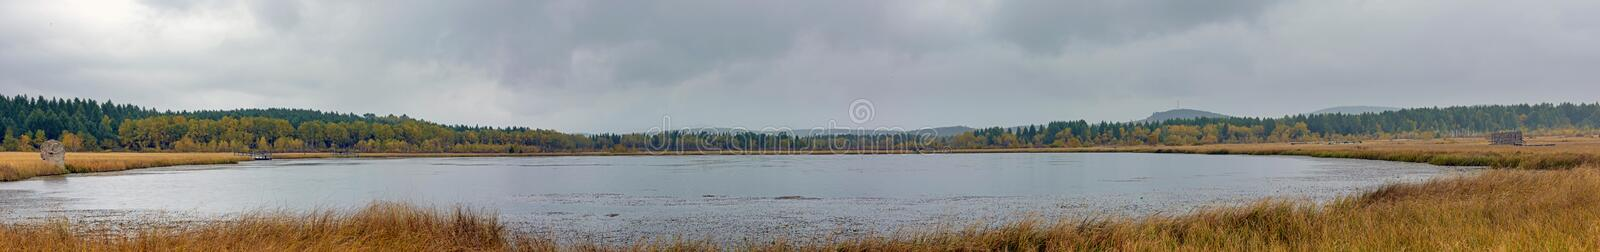 Qixinghu wetland park Autumn scenery. This photo was taken in Qixinghu(Seven Star Lake) wetland park ,Saihaiba National Forest Park ,Bashang Grassland ,Hebei royalty free stock photo